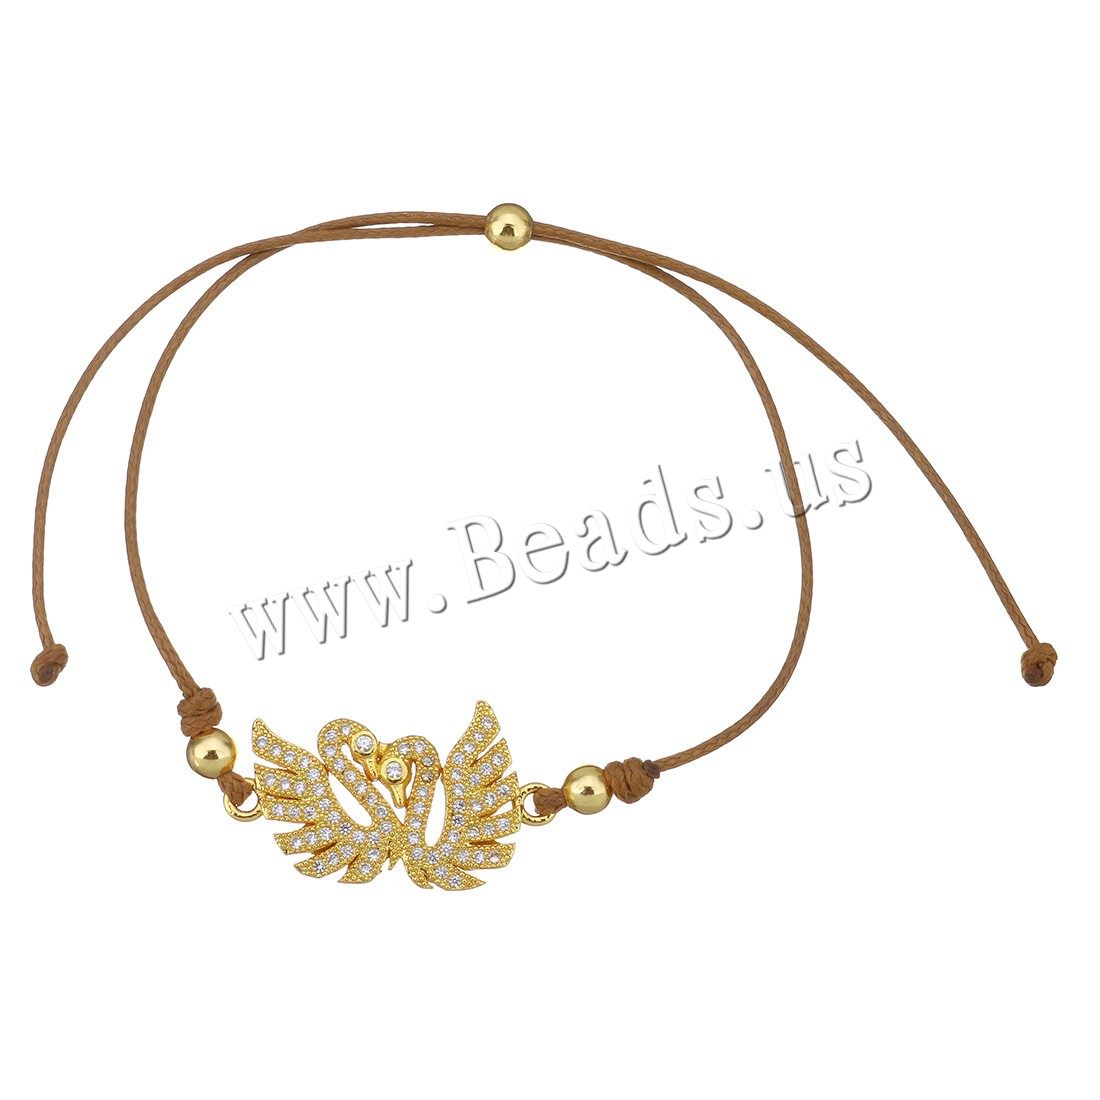 Buy Brass Woven Ball Bracelets Nylon Cord Swan real gold plated Unisex & adjustable & micro pave cubic zirconia 25x14.5mm 4mm 1mm Length:Approx 6-10 Inch 10Strands/Lot Sold Lot